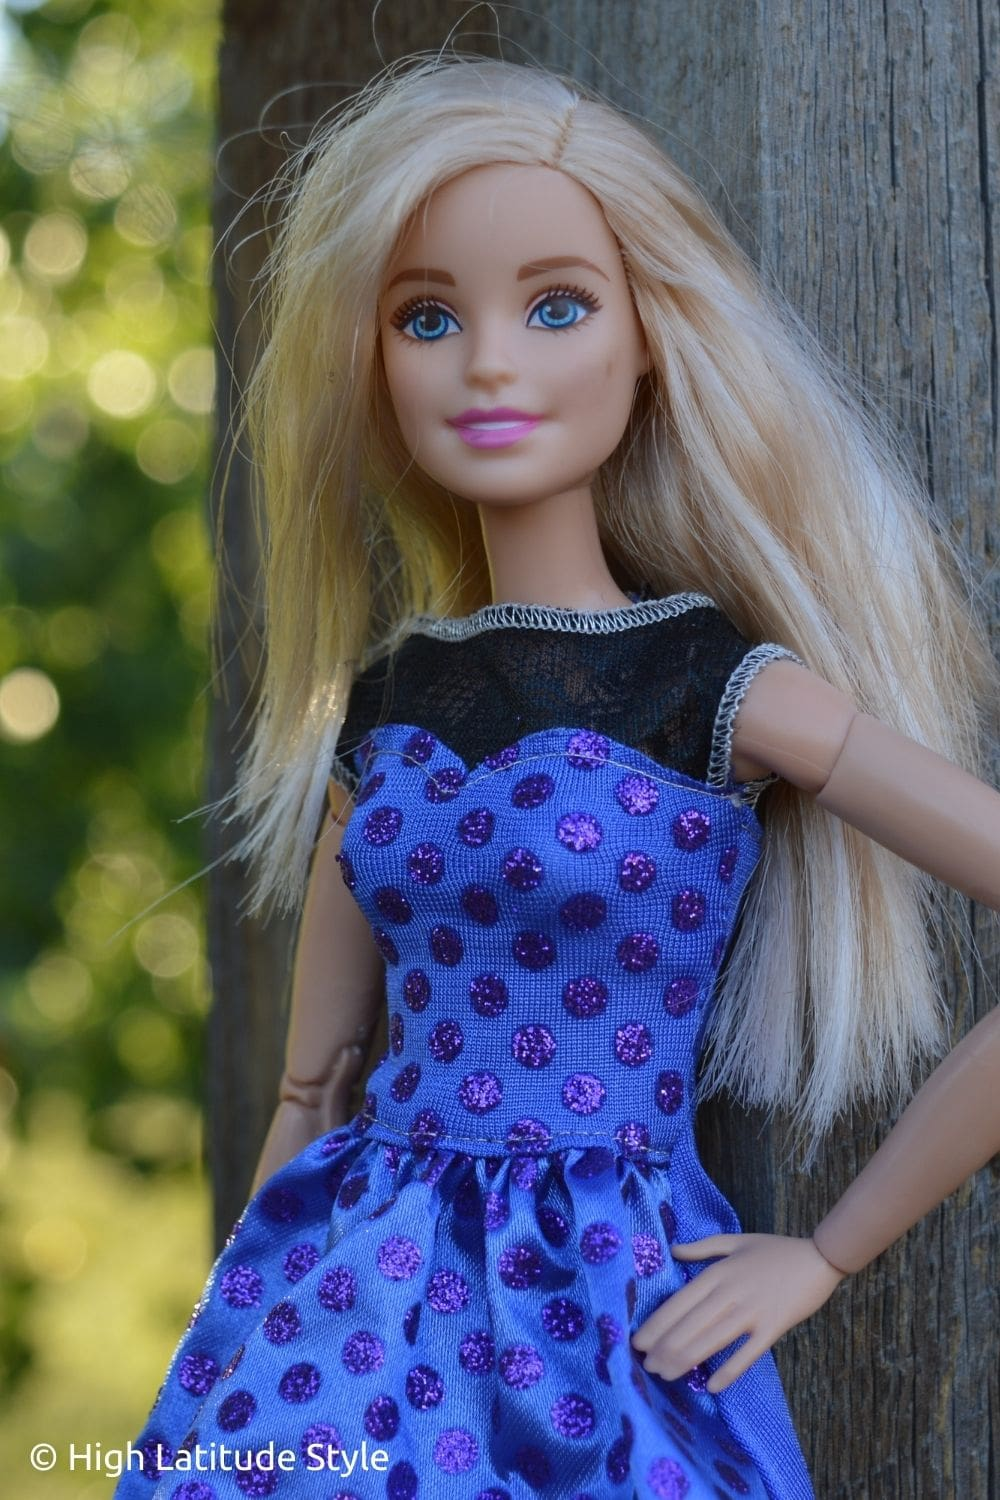 I Love to Be a Living Barbie Doll